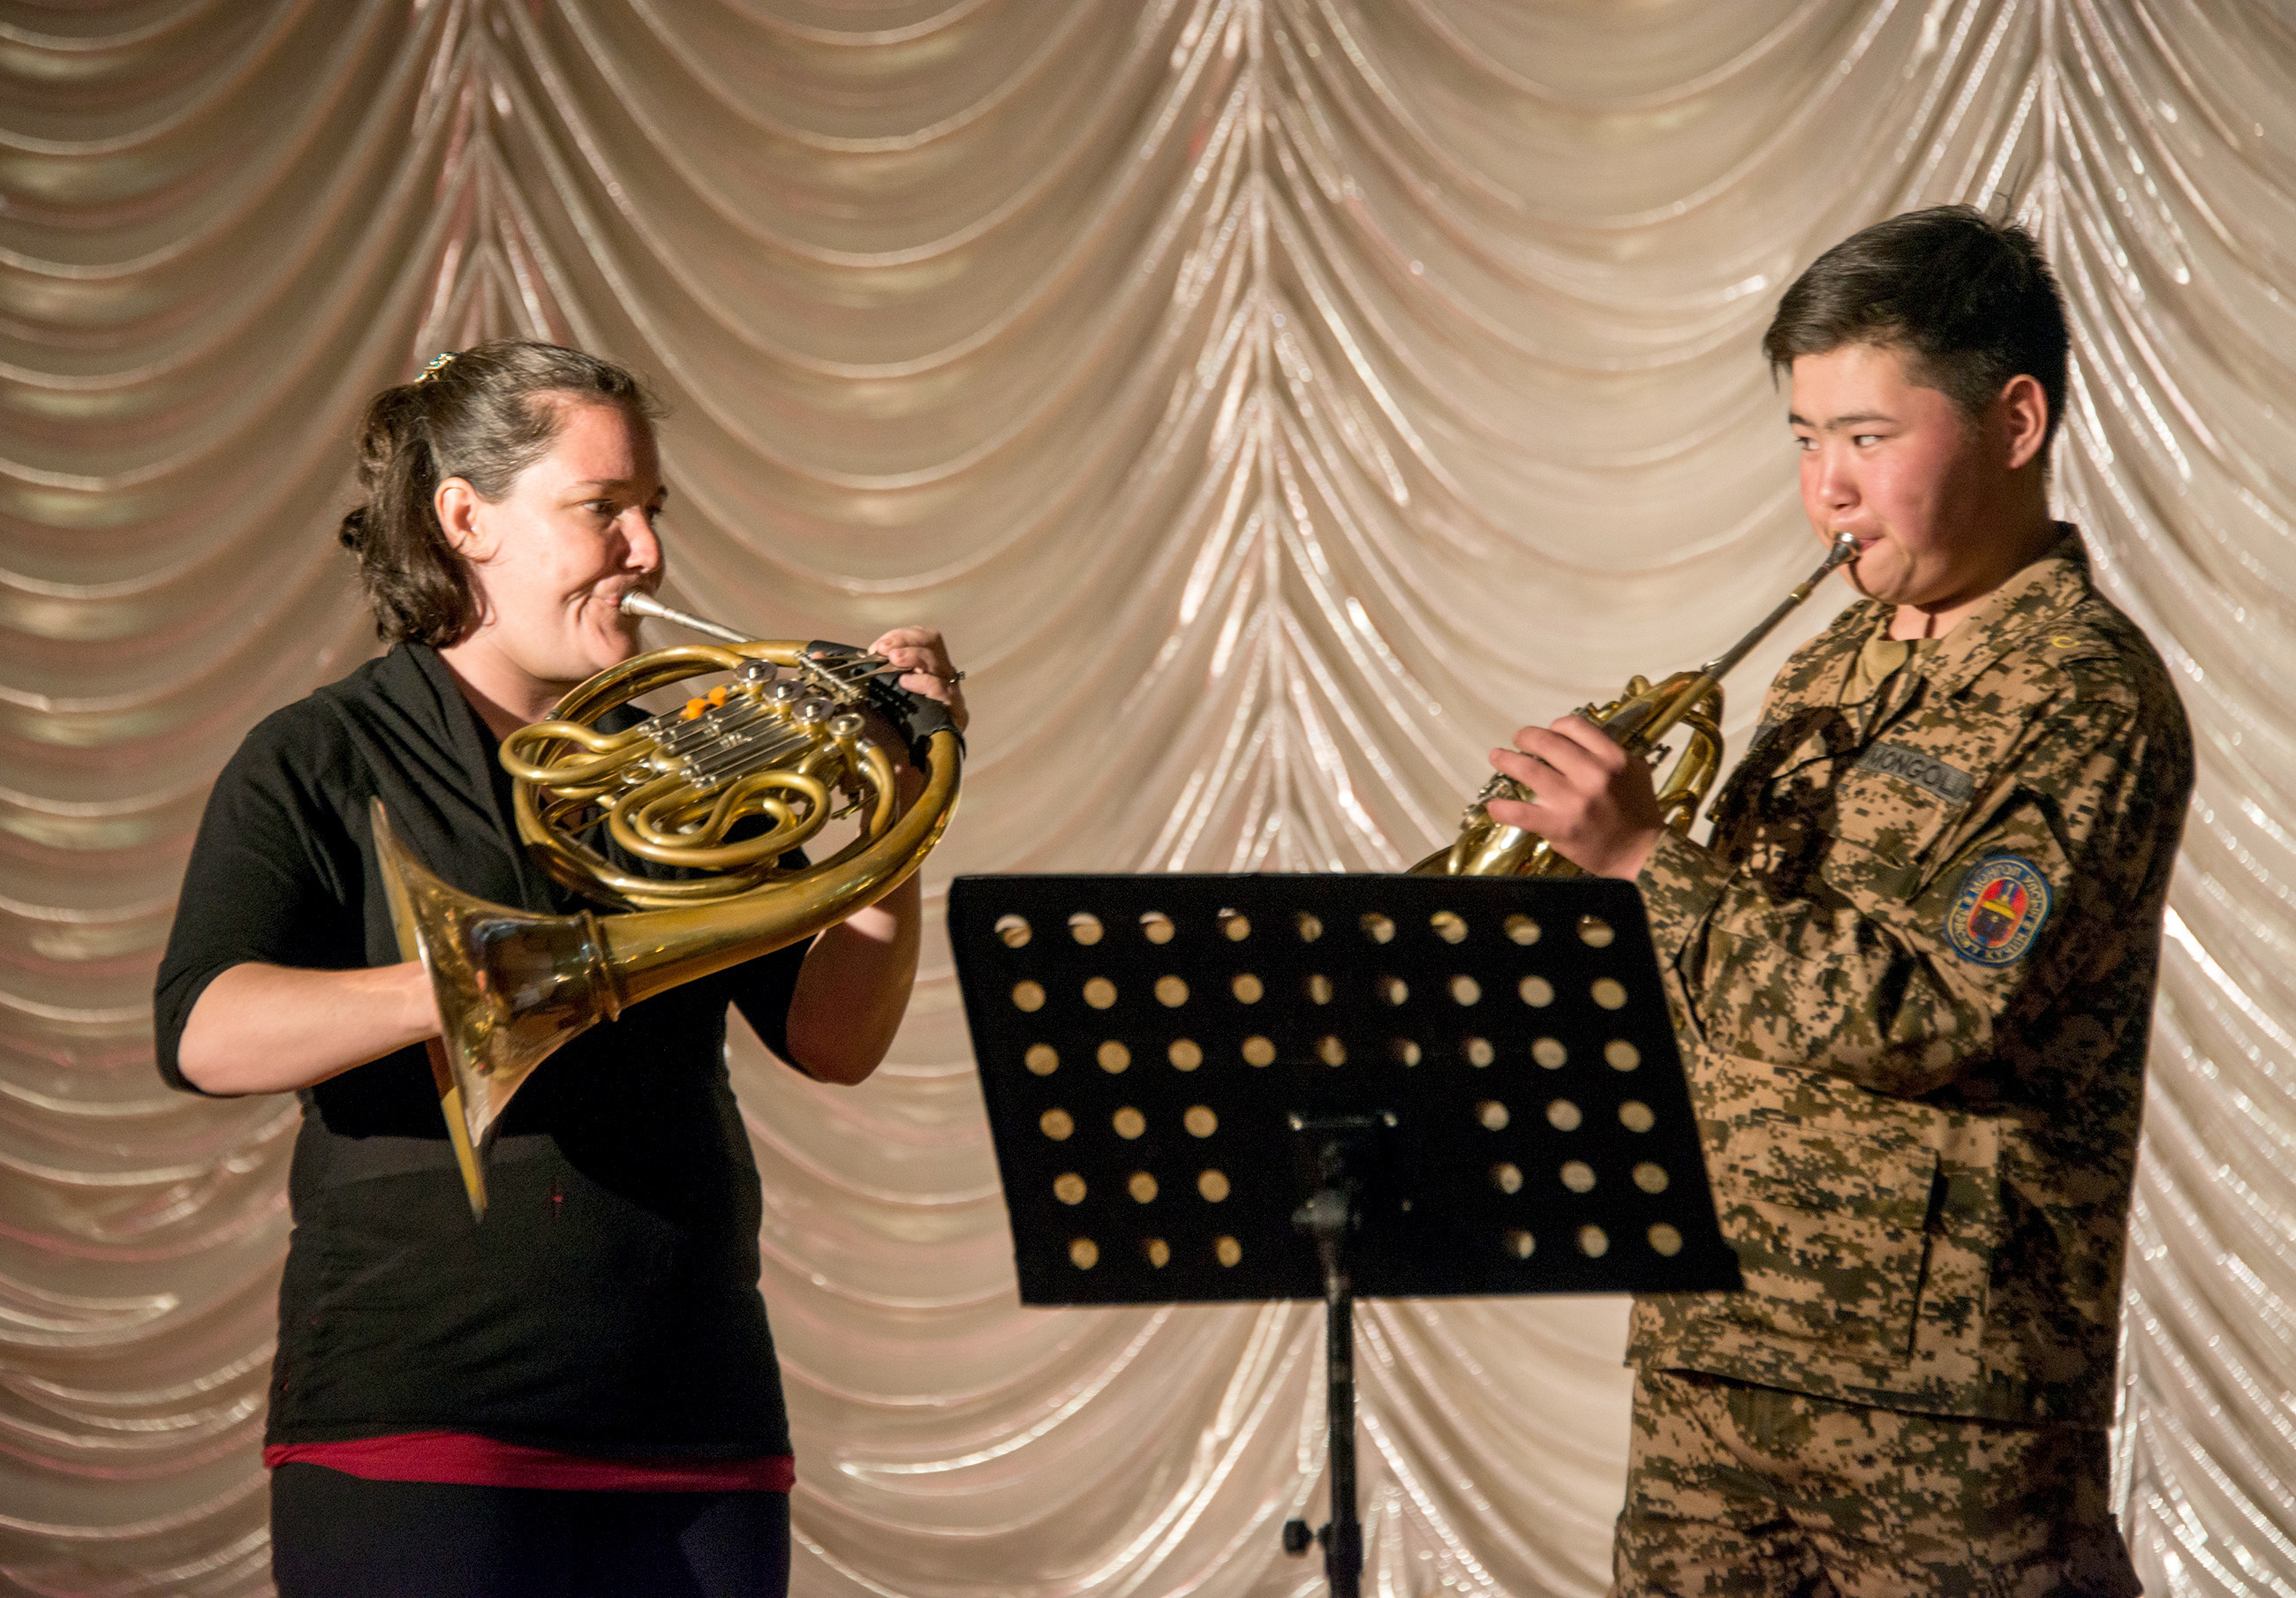 Jennifer Montone works with a student in a Masterclass at the National Defense University Mongolia on June 2, 2017. Photo by Jan Regan / Philadelphia Orchestra.